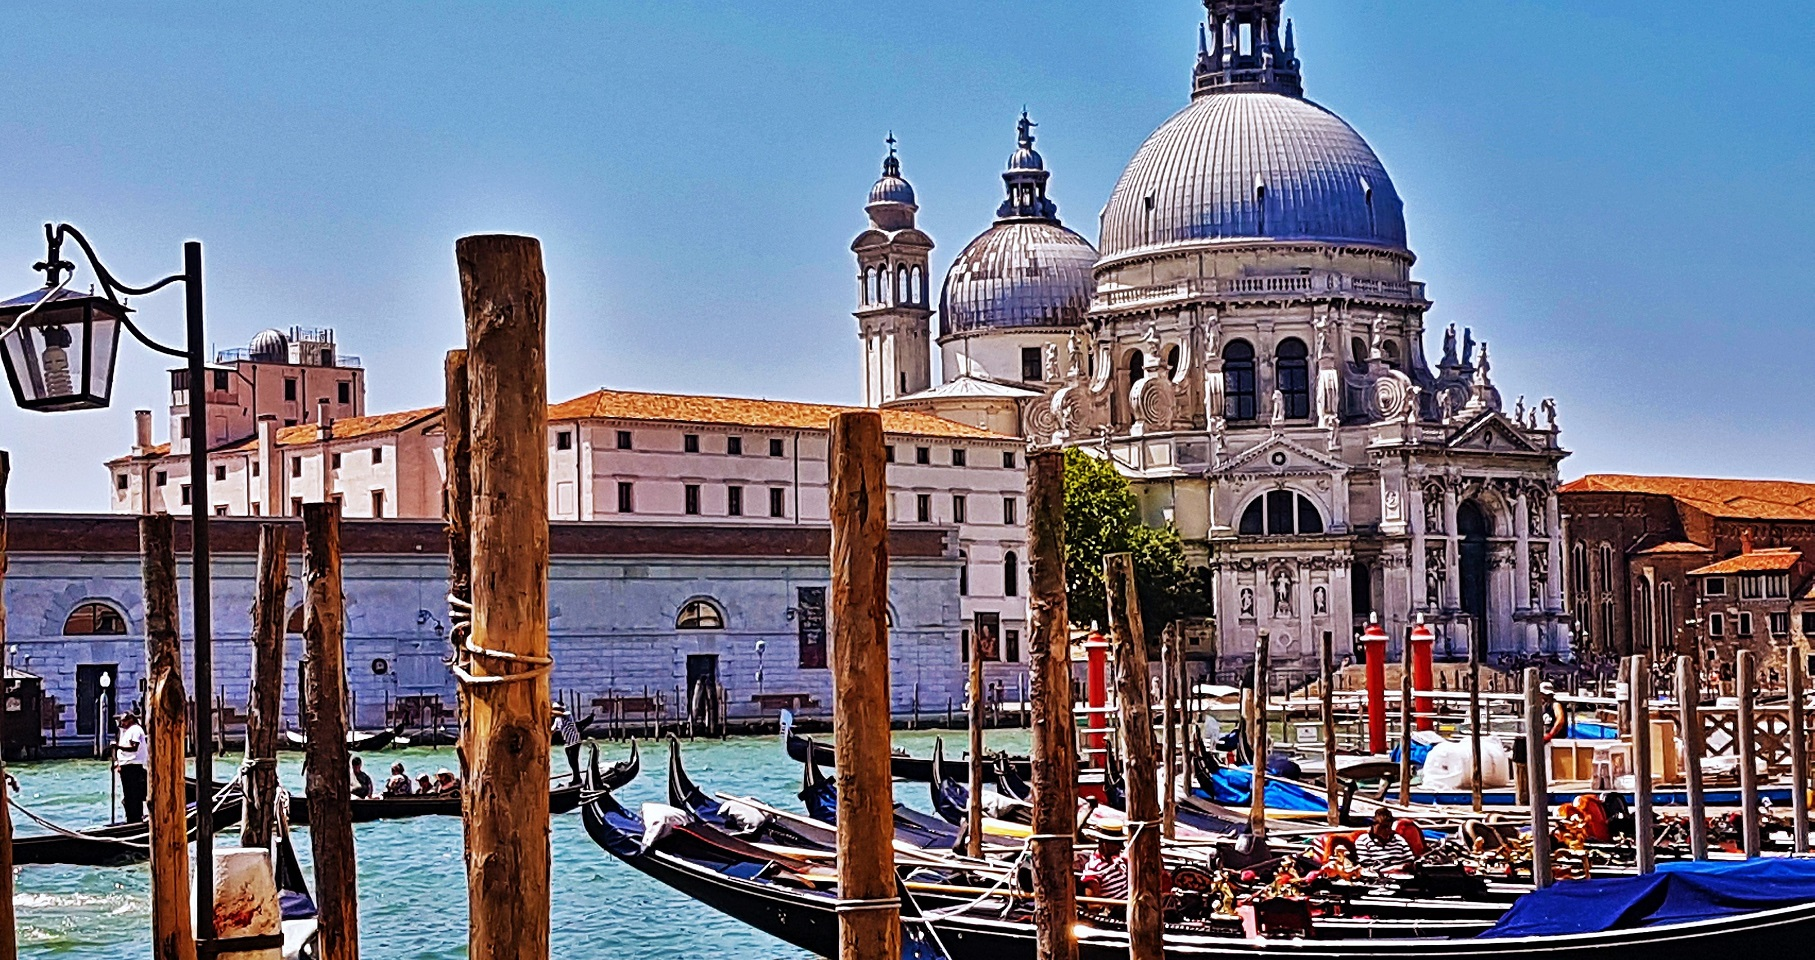 Visiting Venice - Albeit reluctantly!